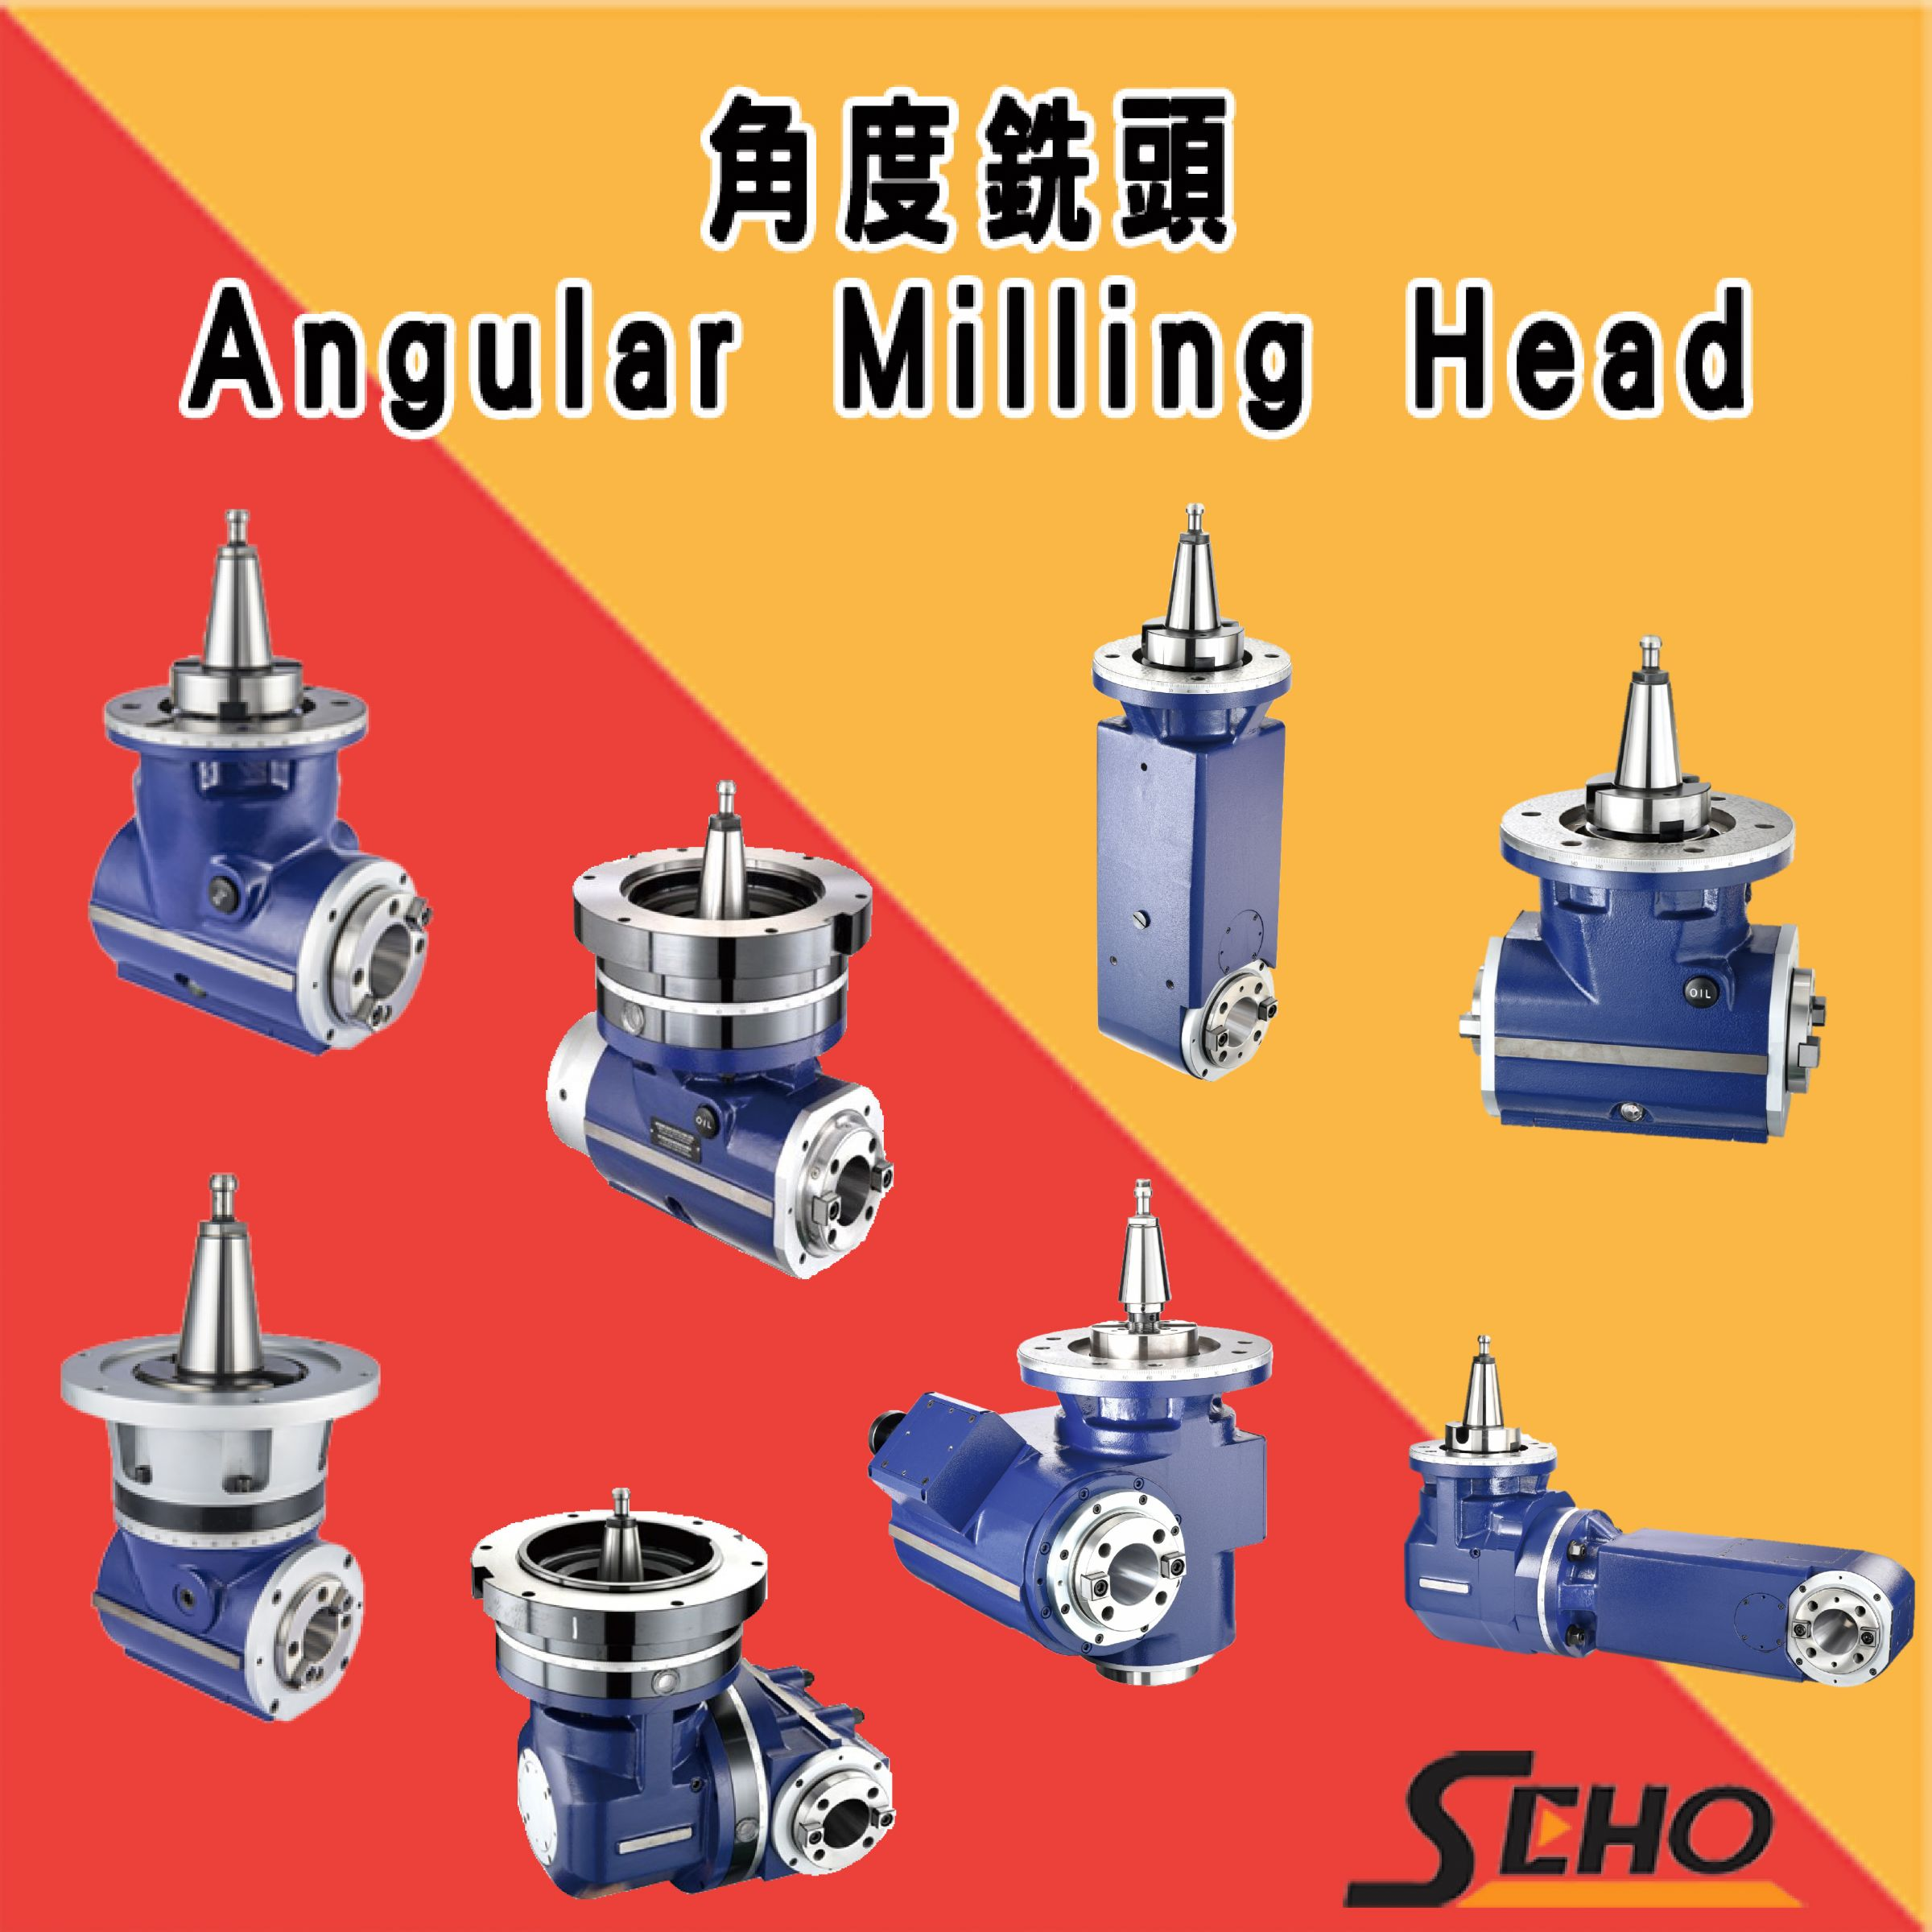 Angular Milling Head